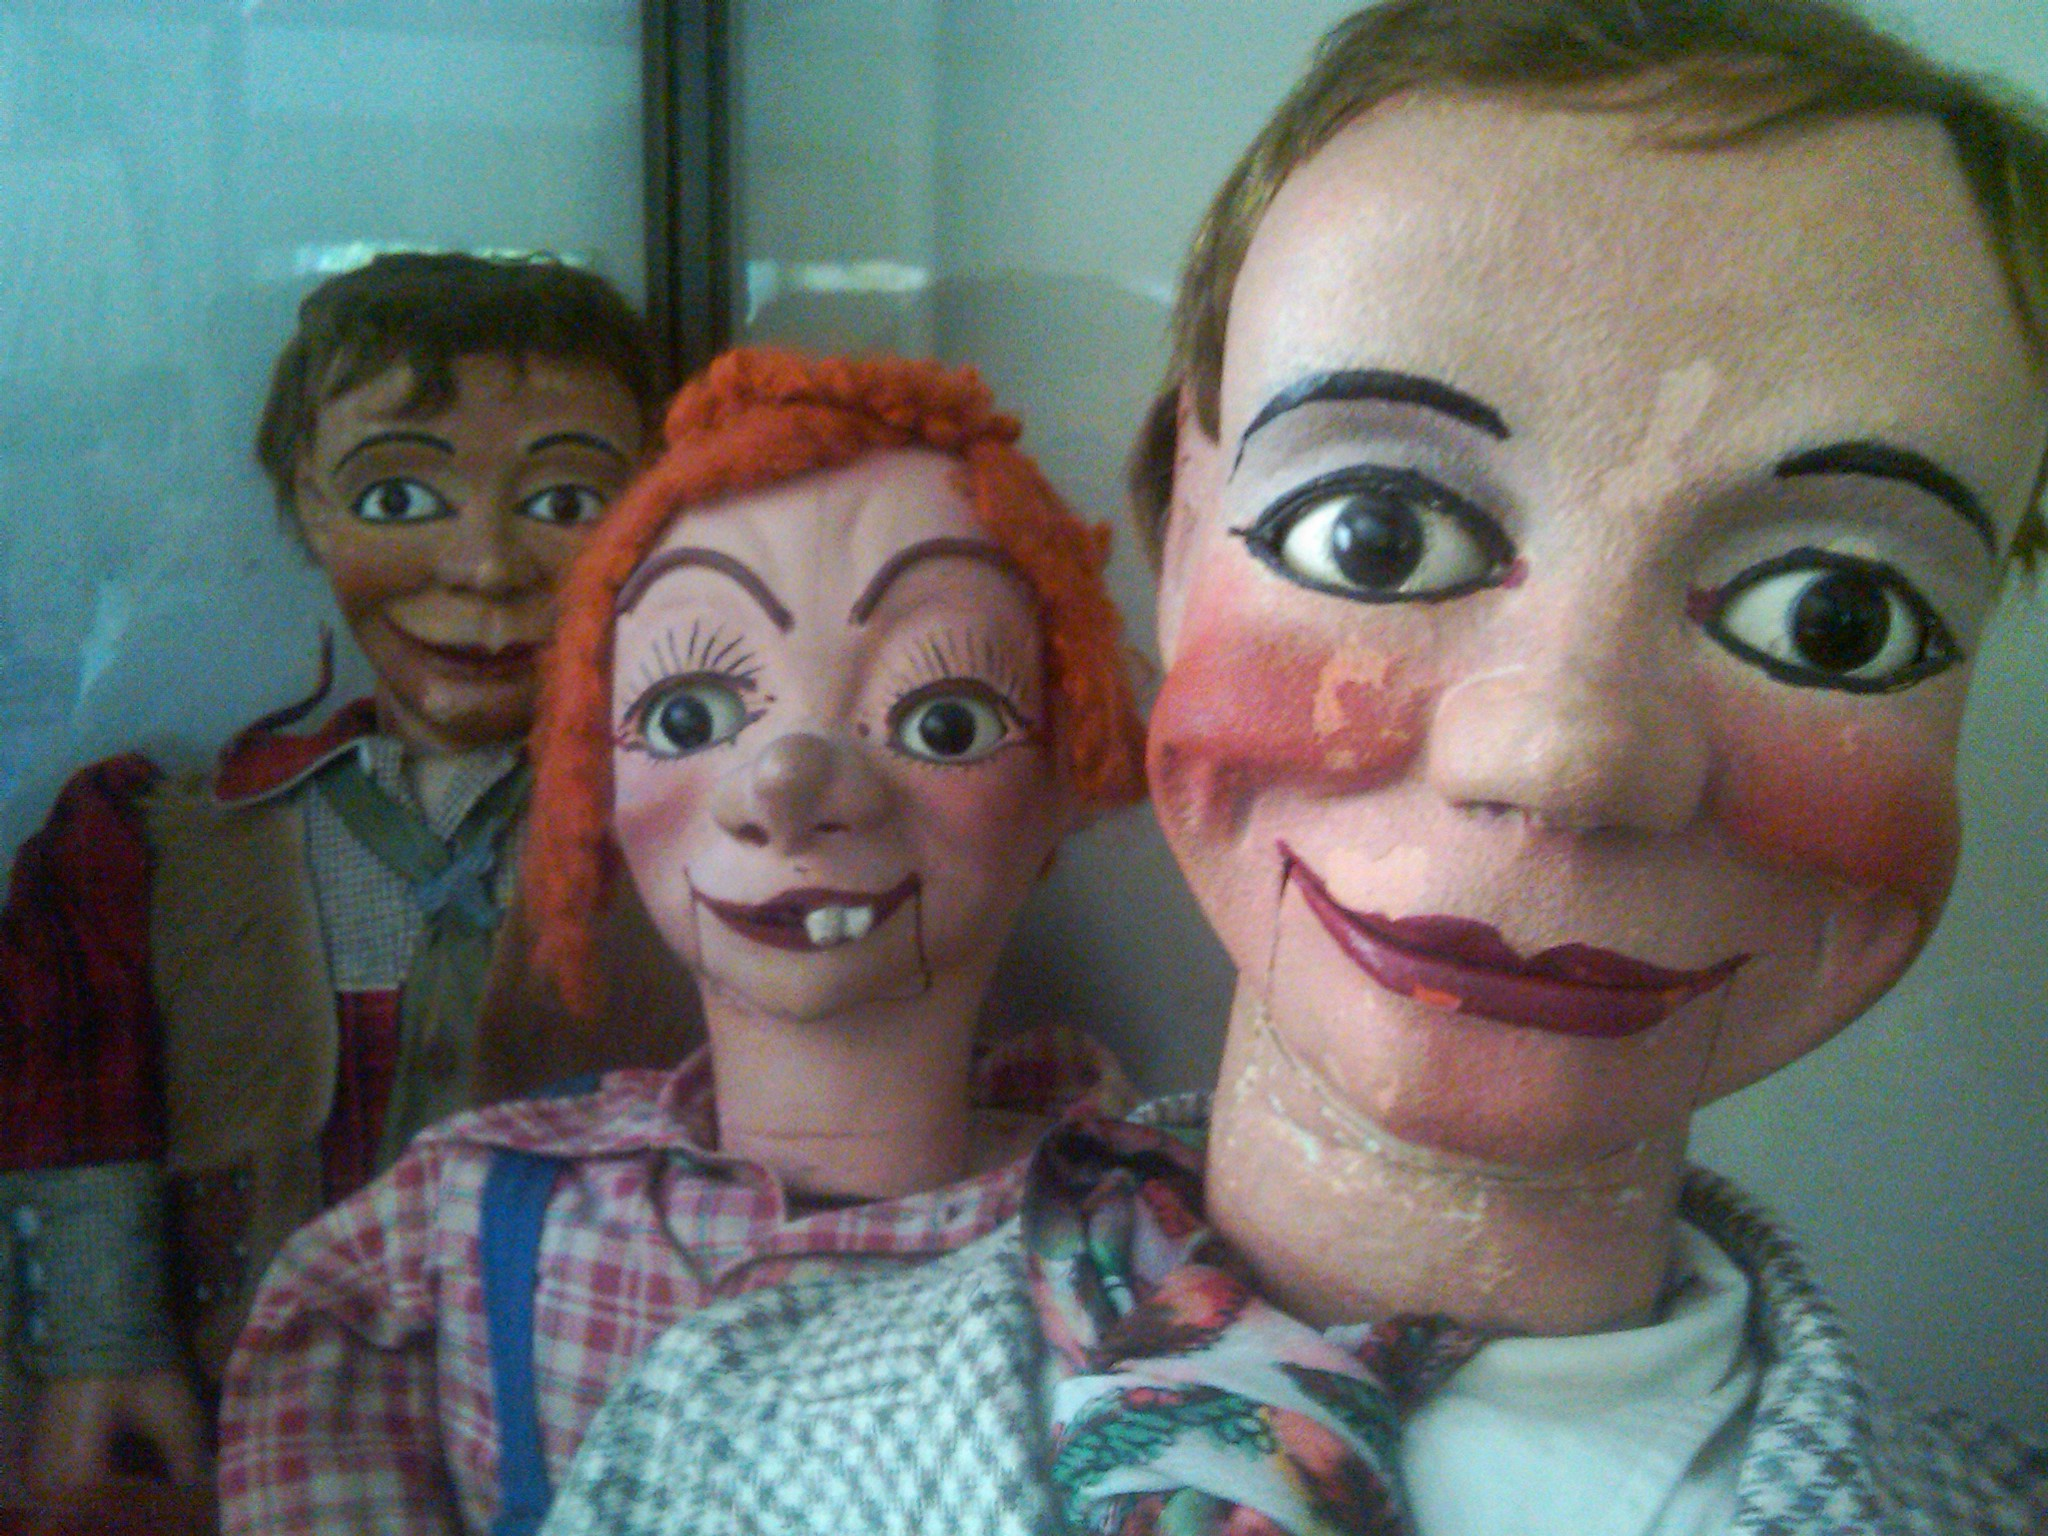 Andy Gross Ventriloquist collector, collection